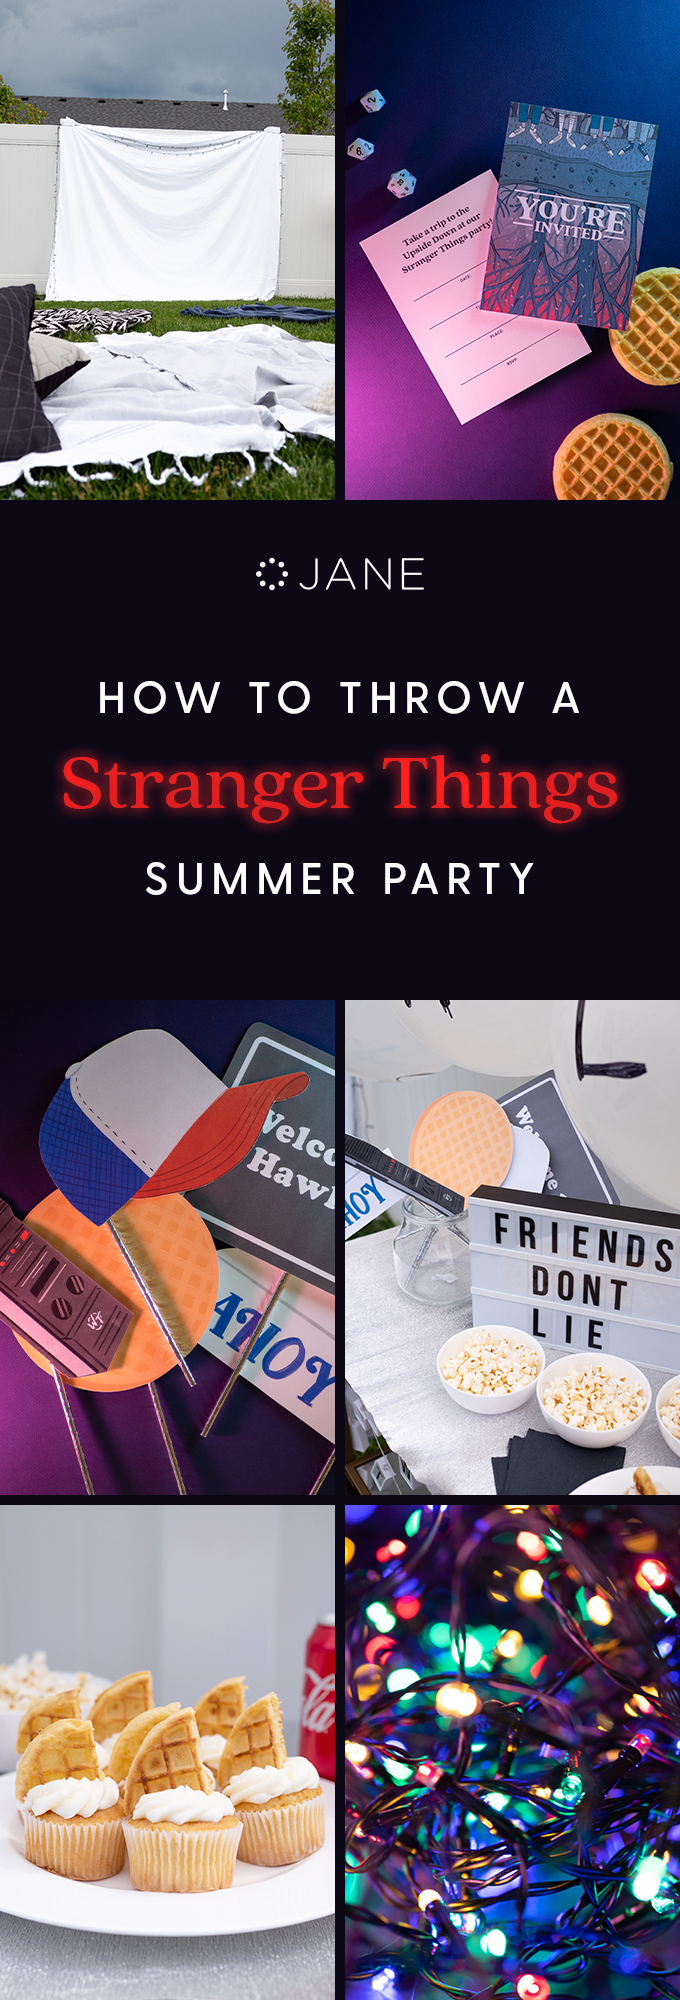 stranger-things-summer-party-pinnable-image